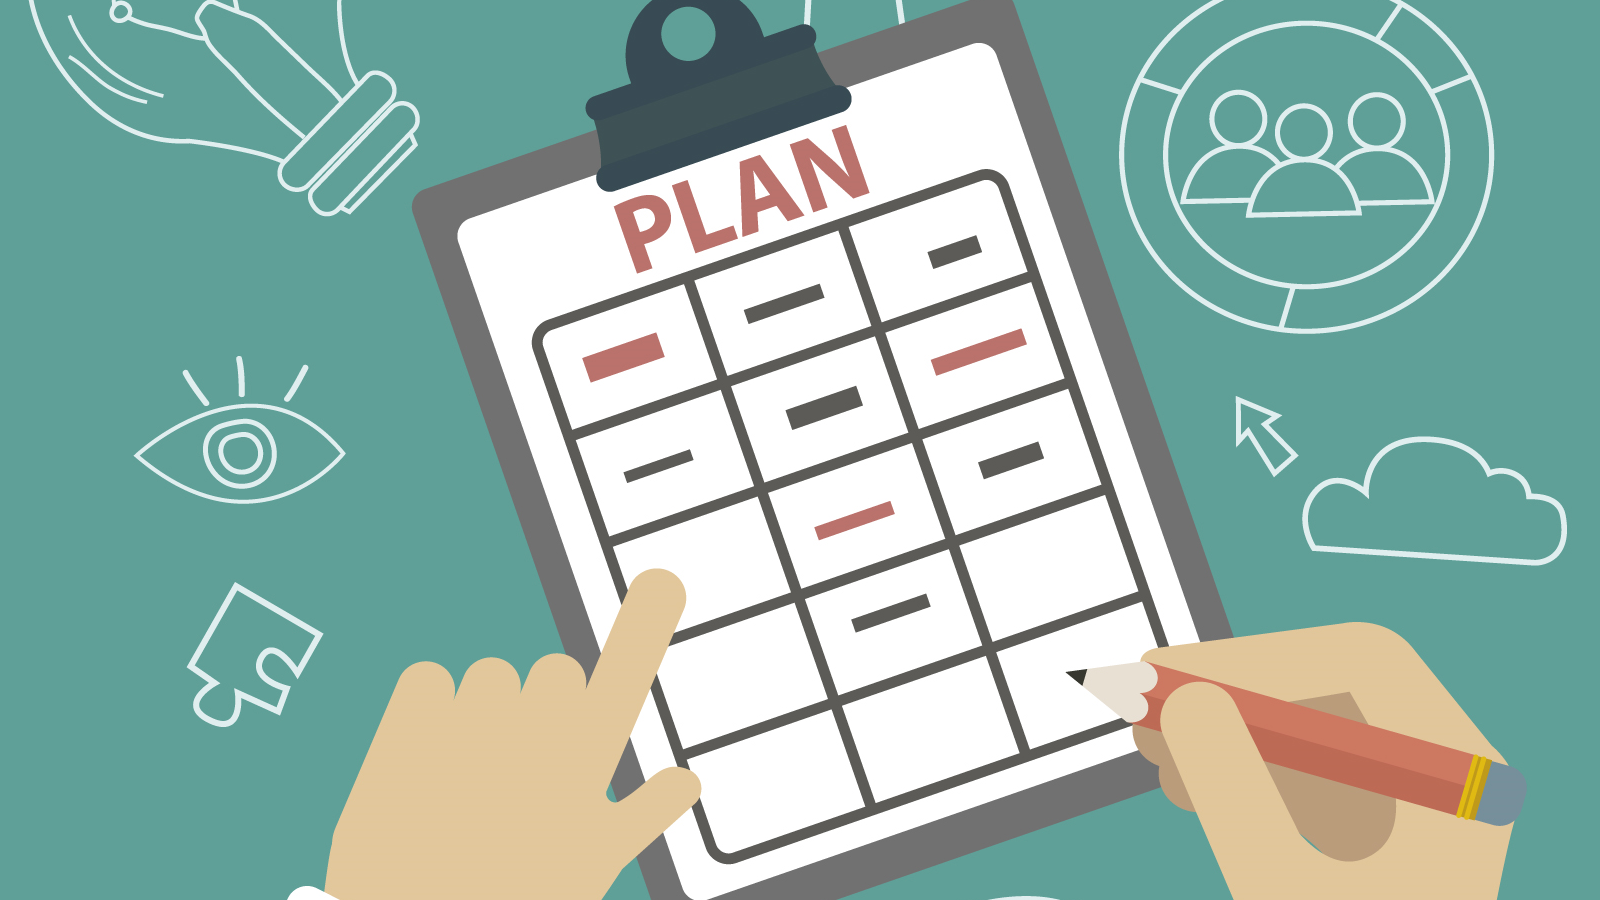 10 reasons why you should plan your day nybh for For planner